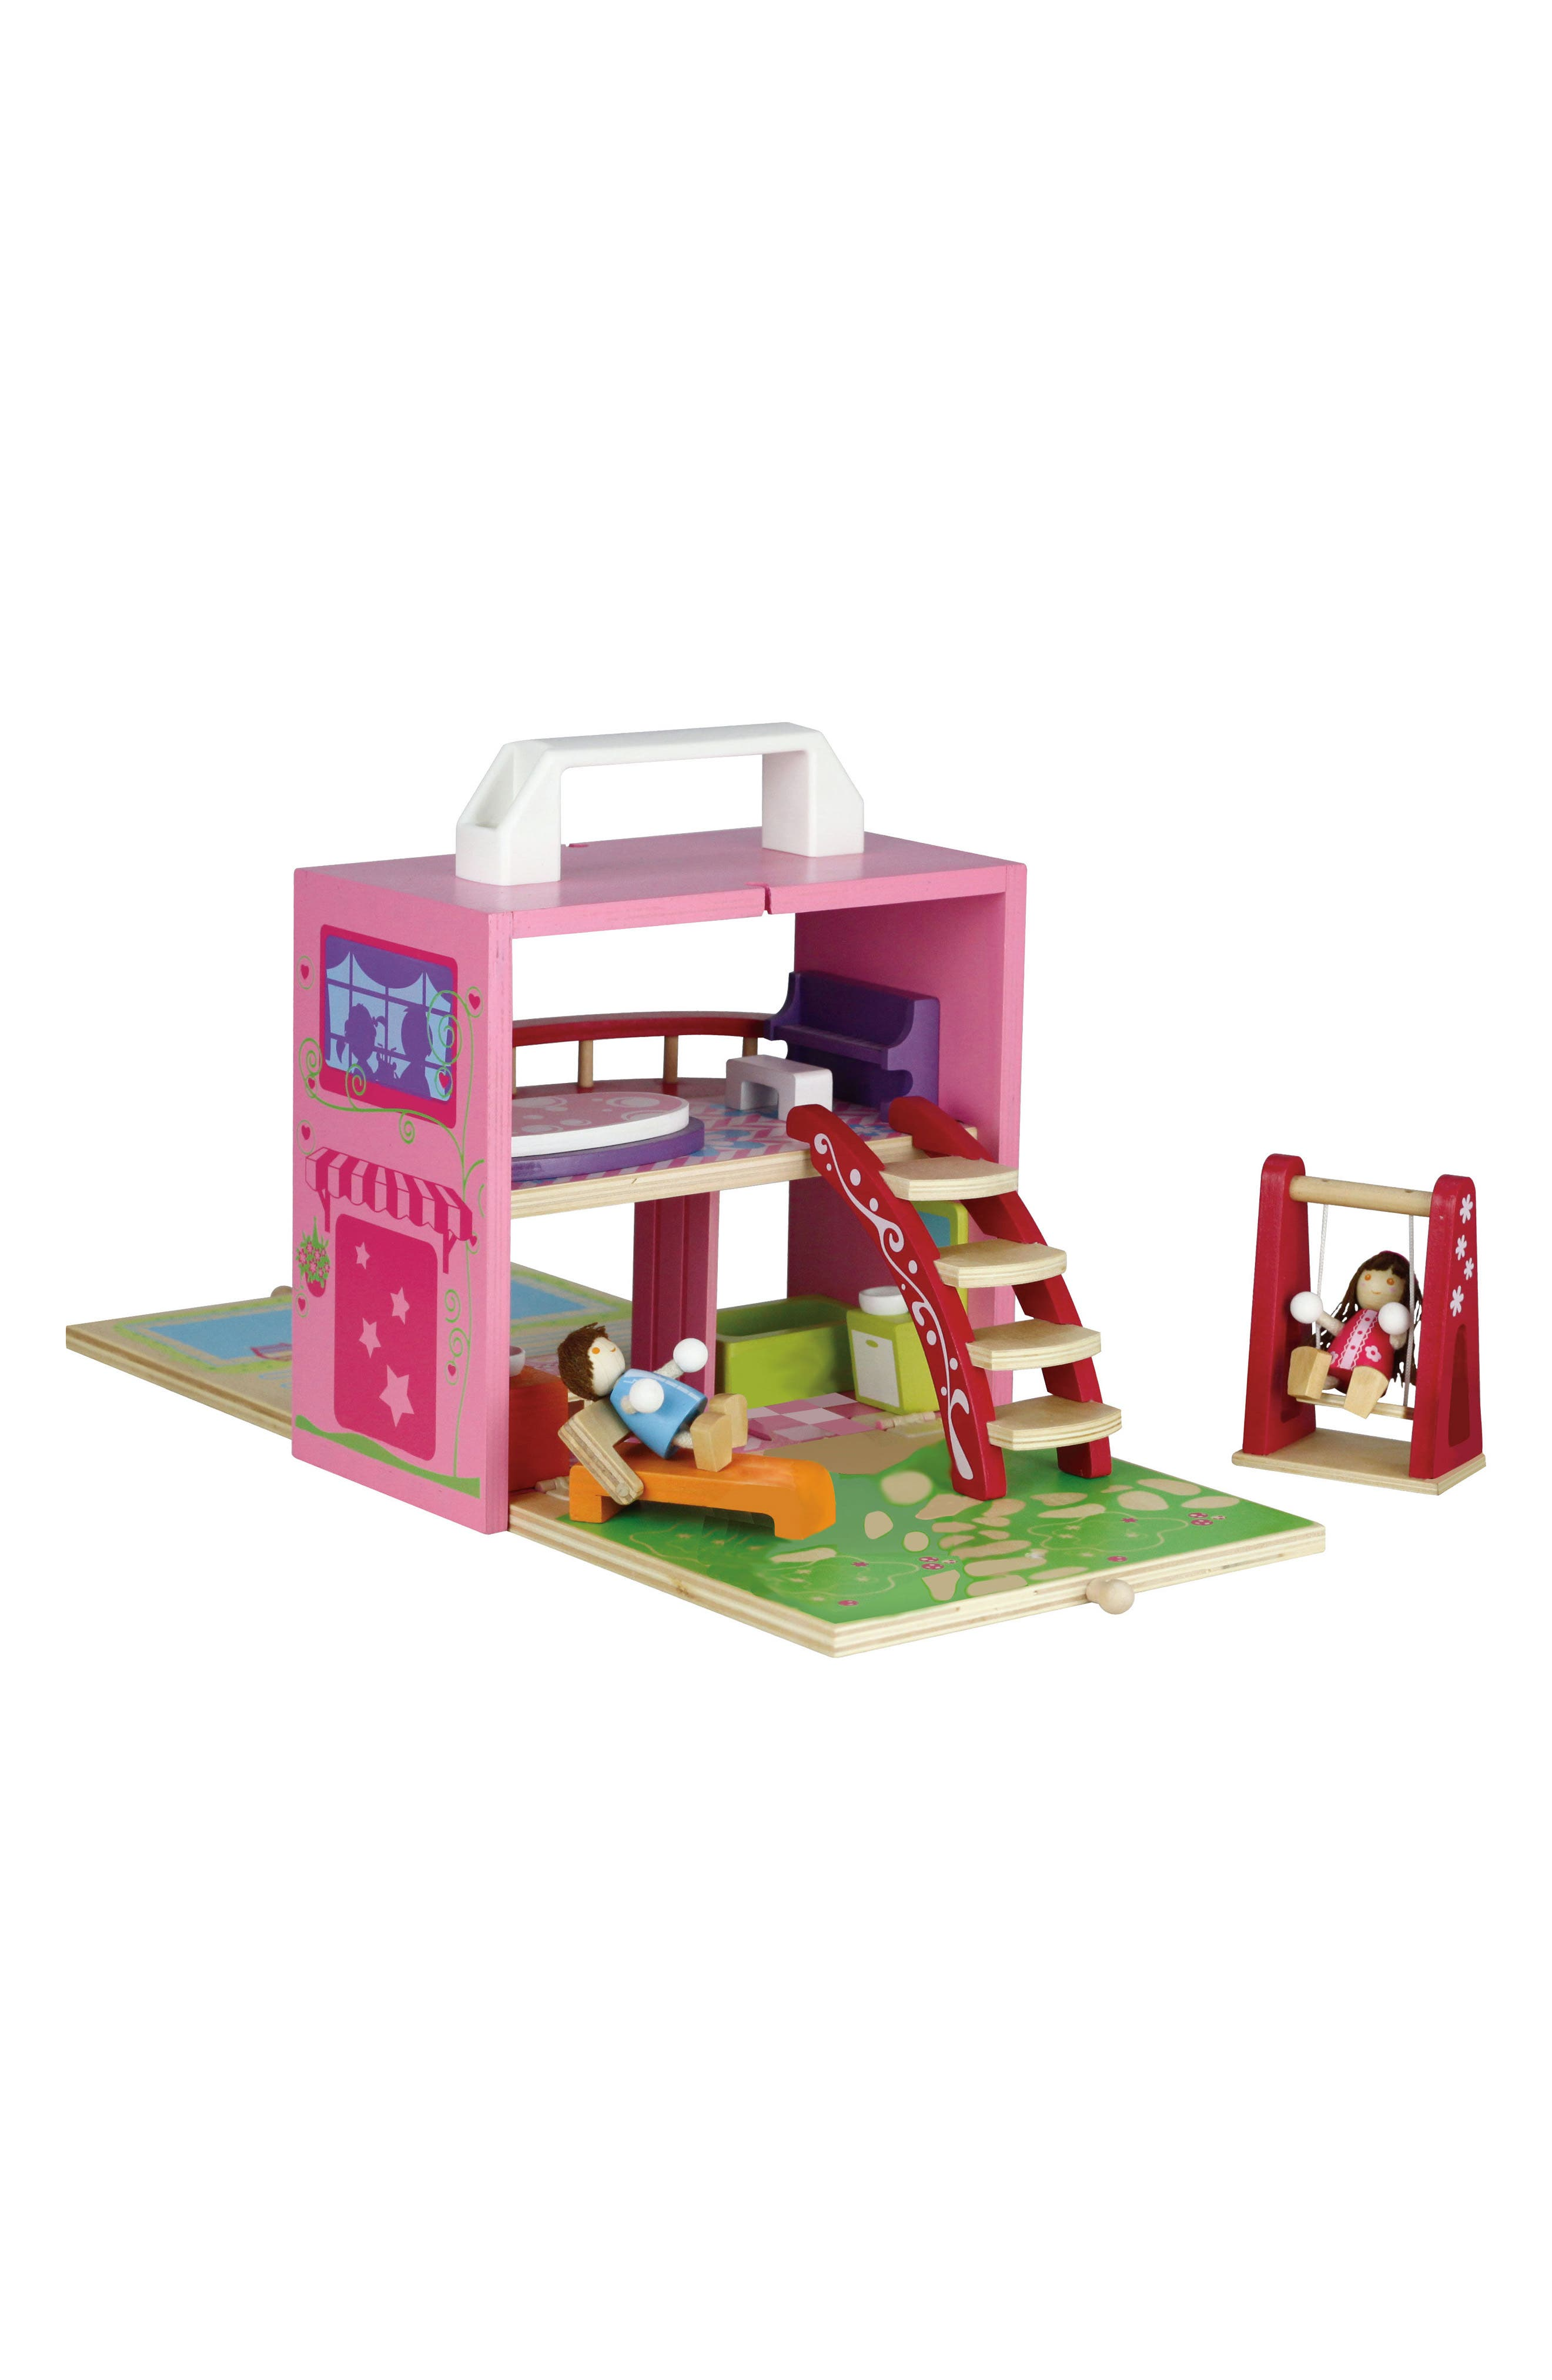 Main Image - Diggin 13-Piece Wooden Dollhouse Box Set